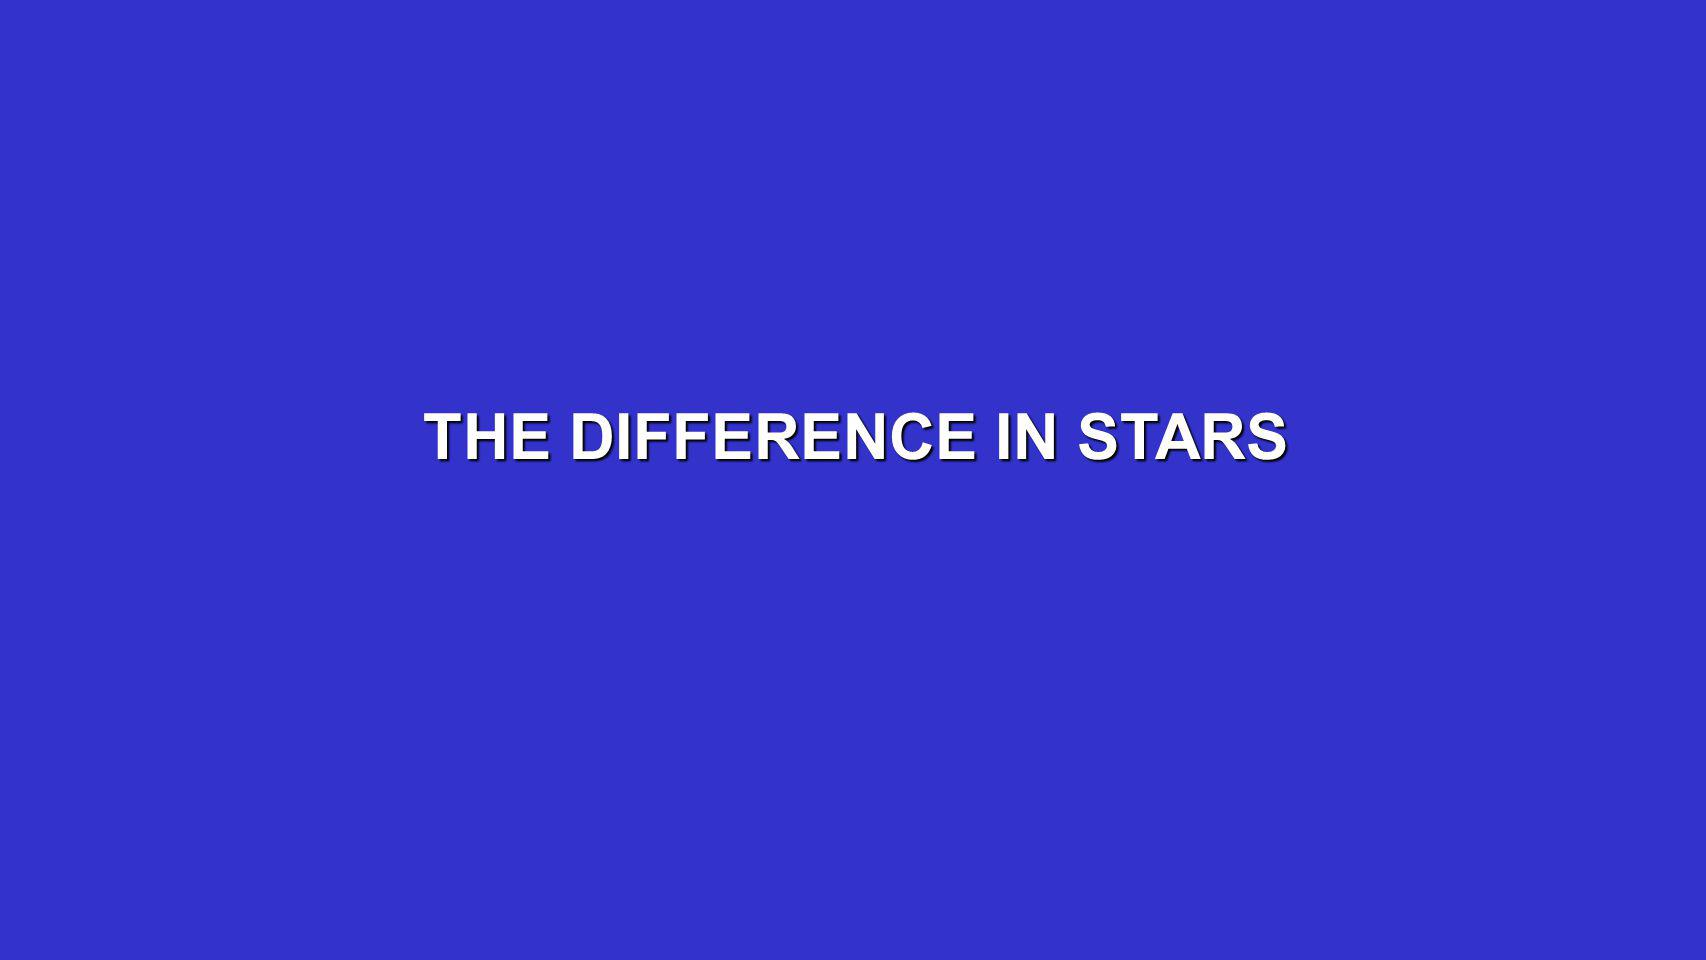 THE DIFFERENCE IN STARS